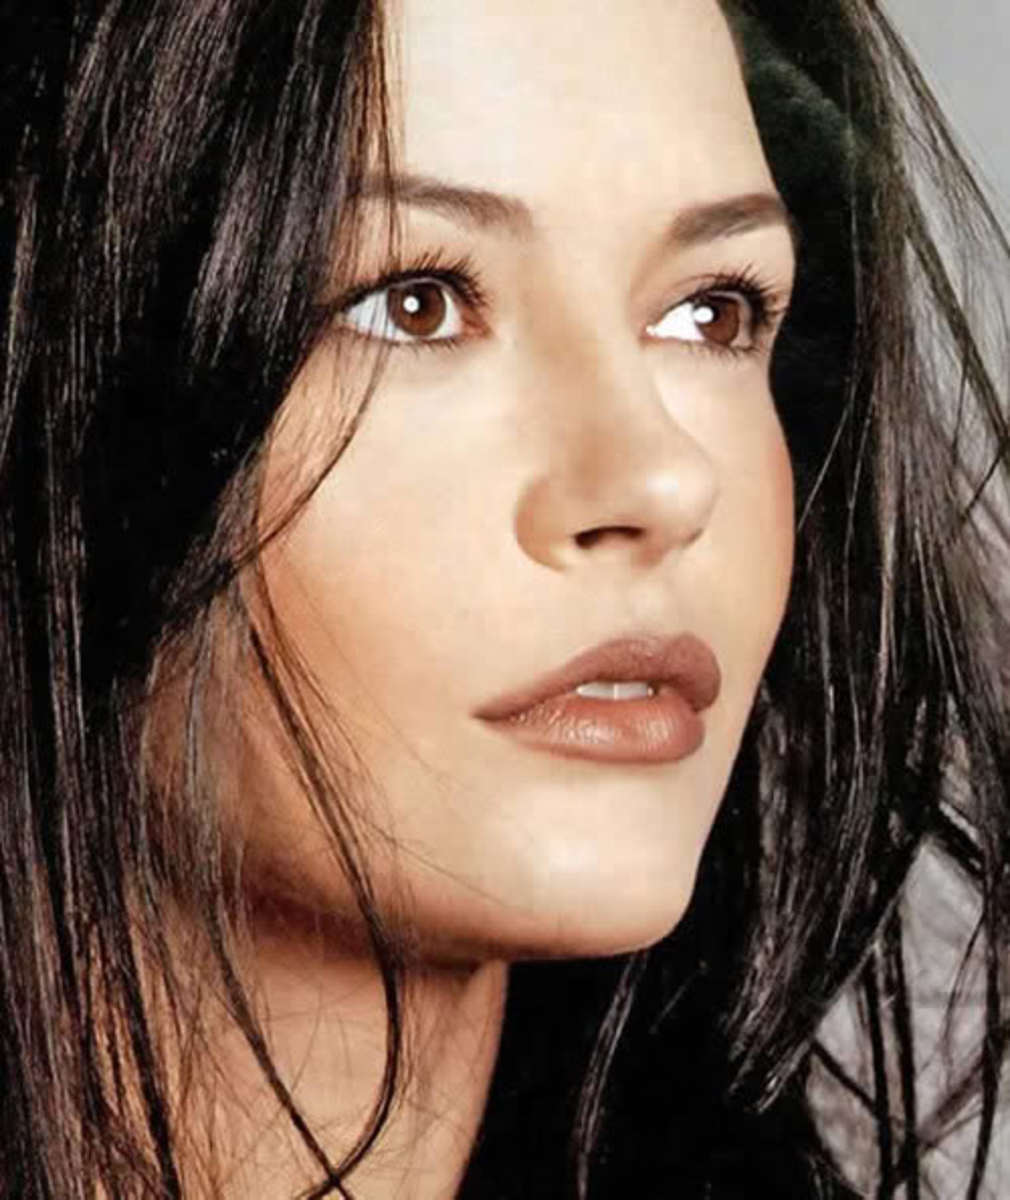 Catherine Zeta Jones eyebrows don't have too much of an arch, thus causing her eyes to be the focal point of her face.